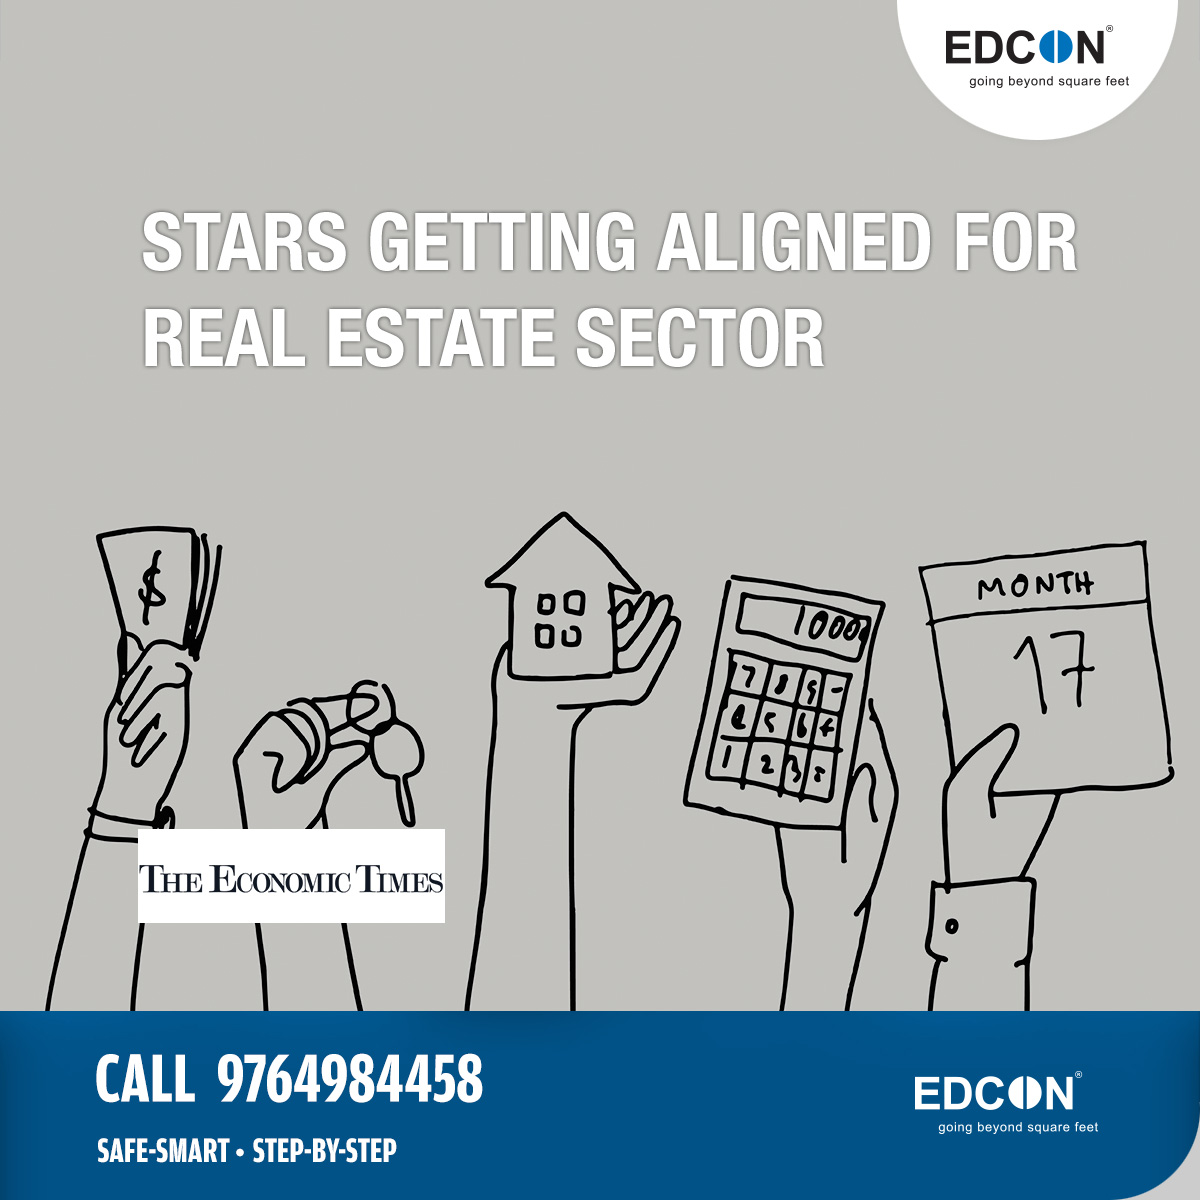 Stars getting aligned for real estate sector